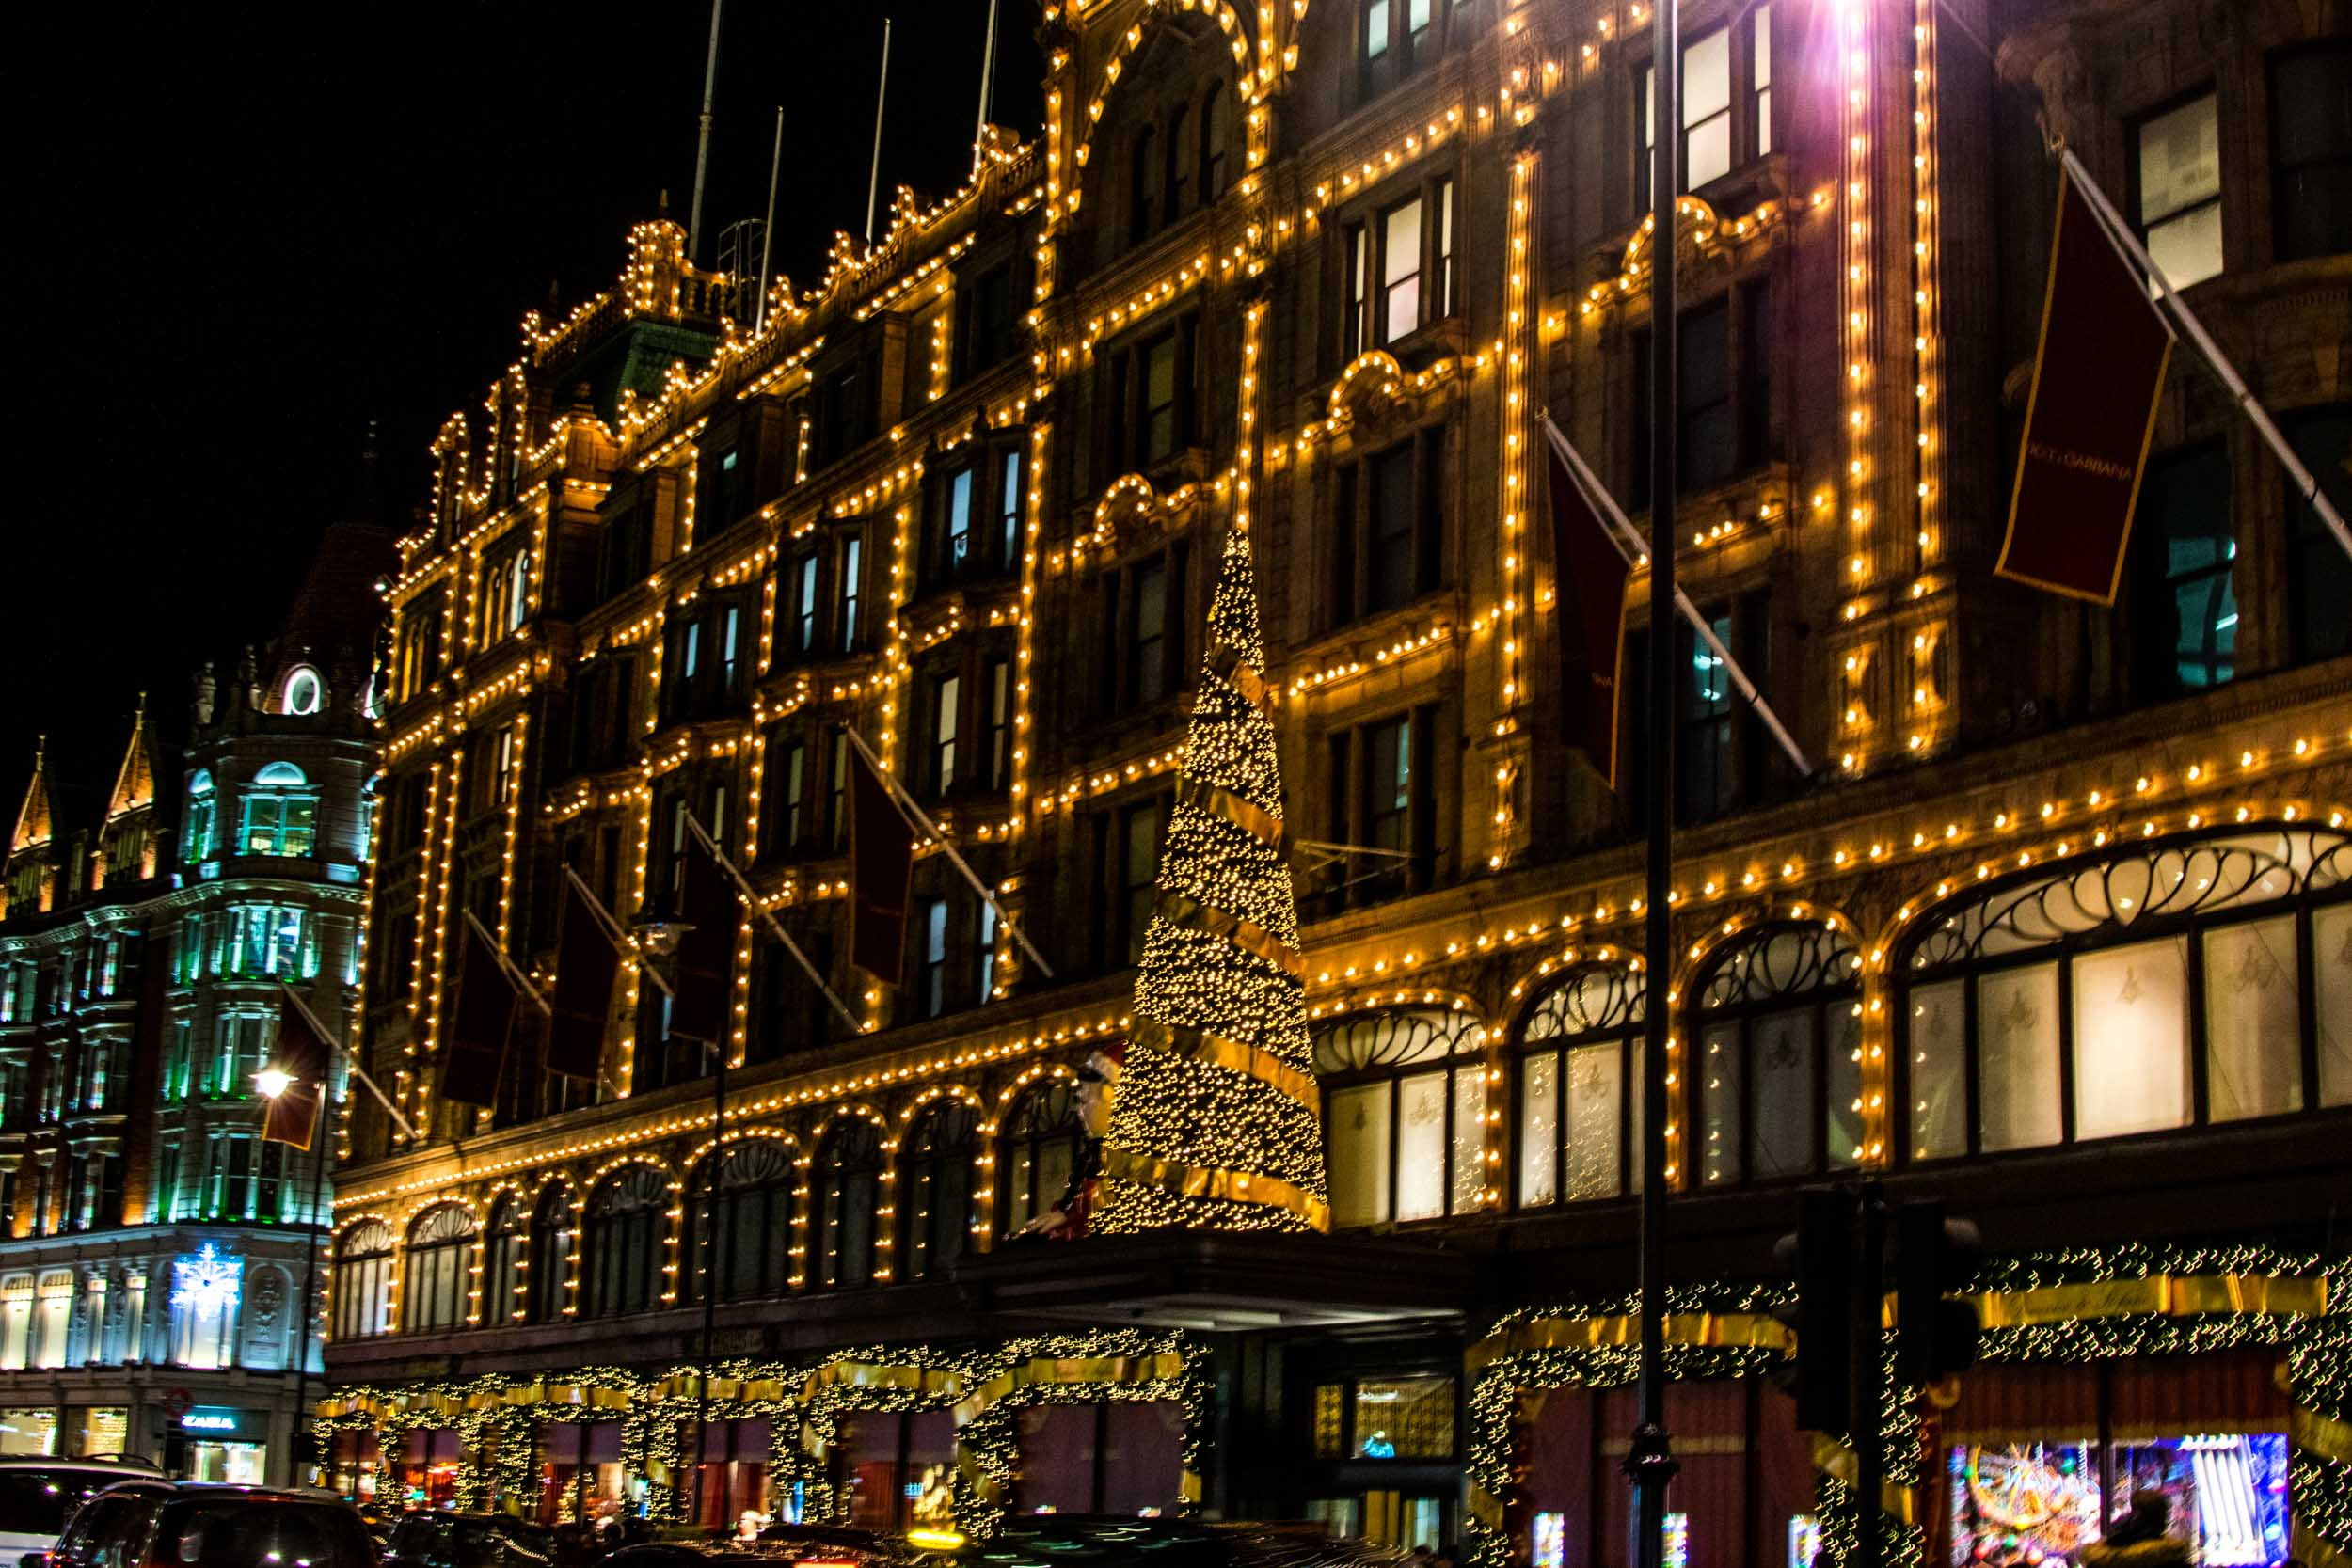 Christmas tree and decorations on the outside of Harrods department store, London.